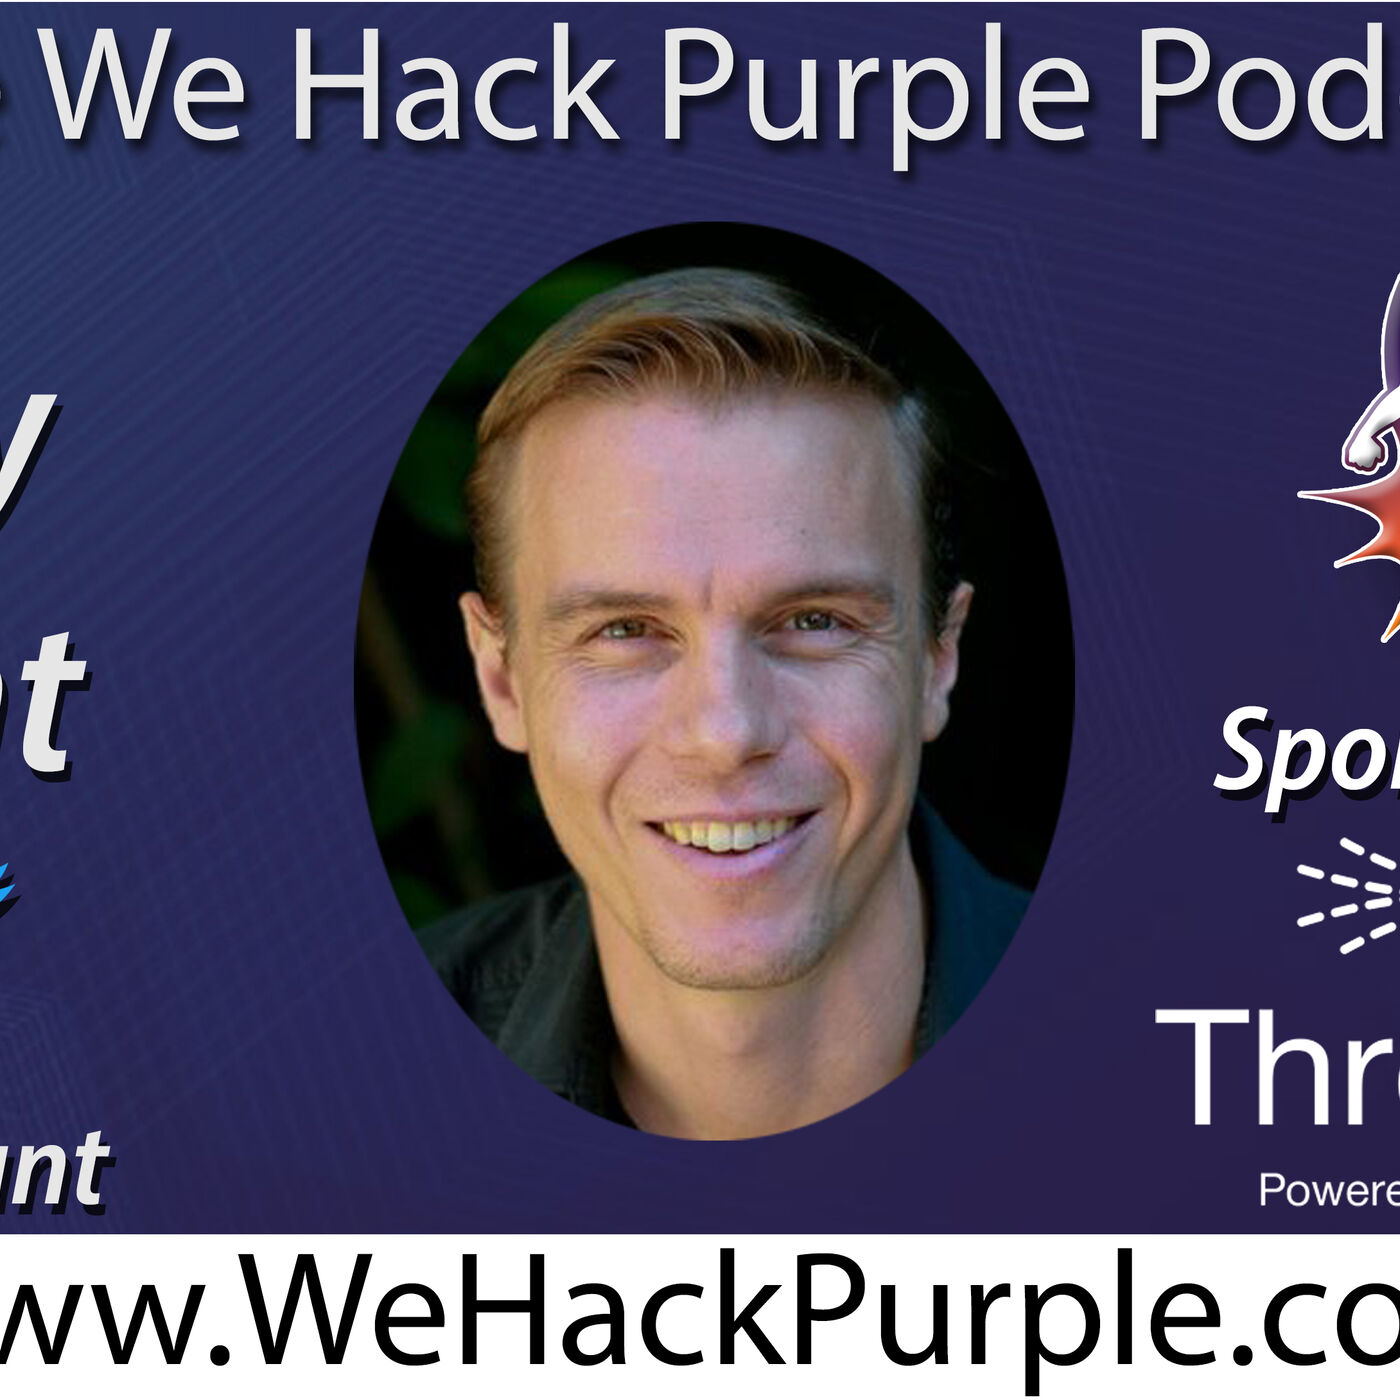 We Hack Purple Podcast 25 with Troy Hunt